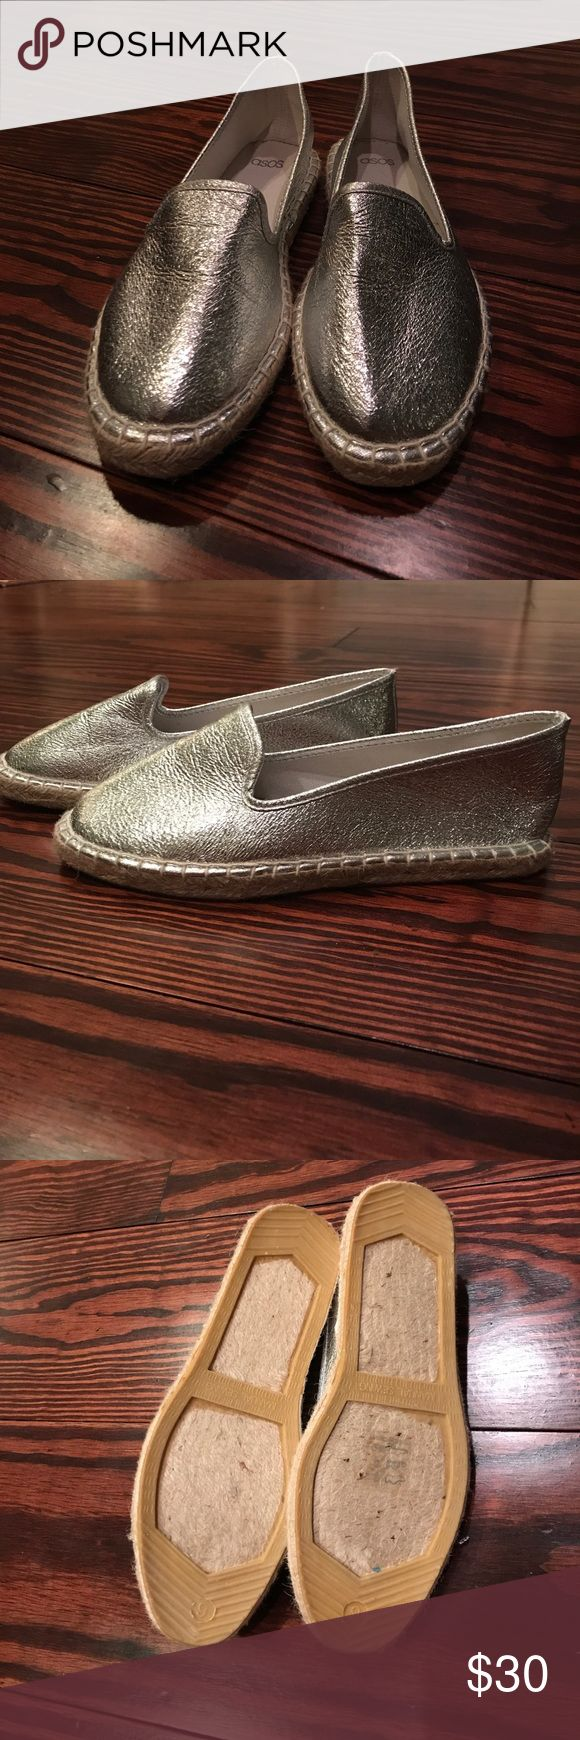 ASOS never been worn silver flat slip on Purchased in Sweden asos silver flat shoes. Size 8.5 in perfect condition never worn ASOS Shoes Flats & Loafers